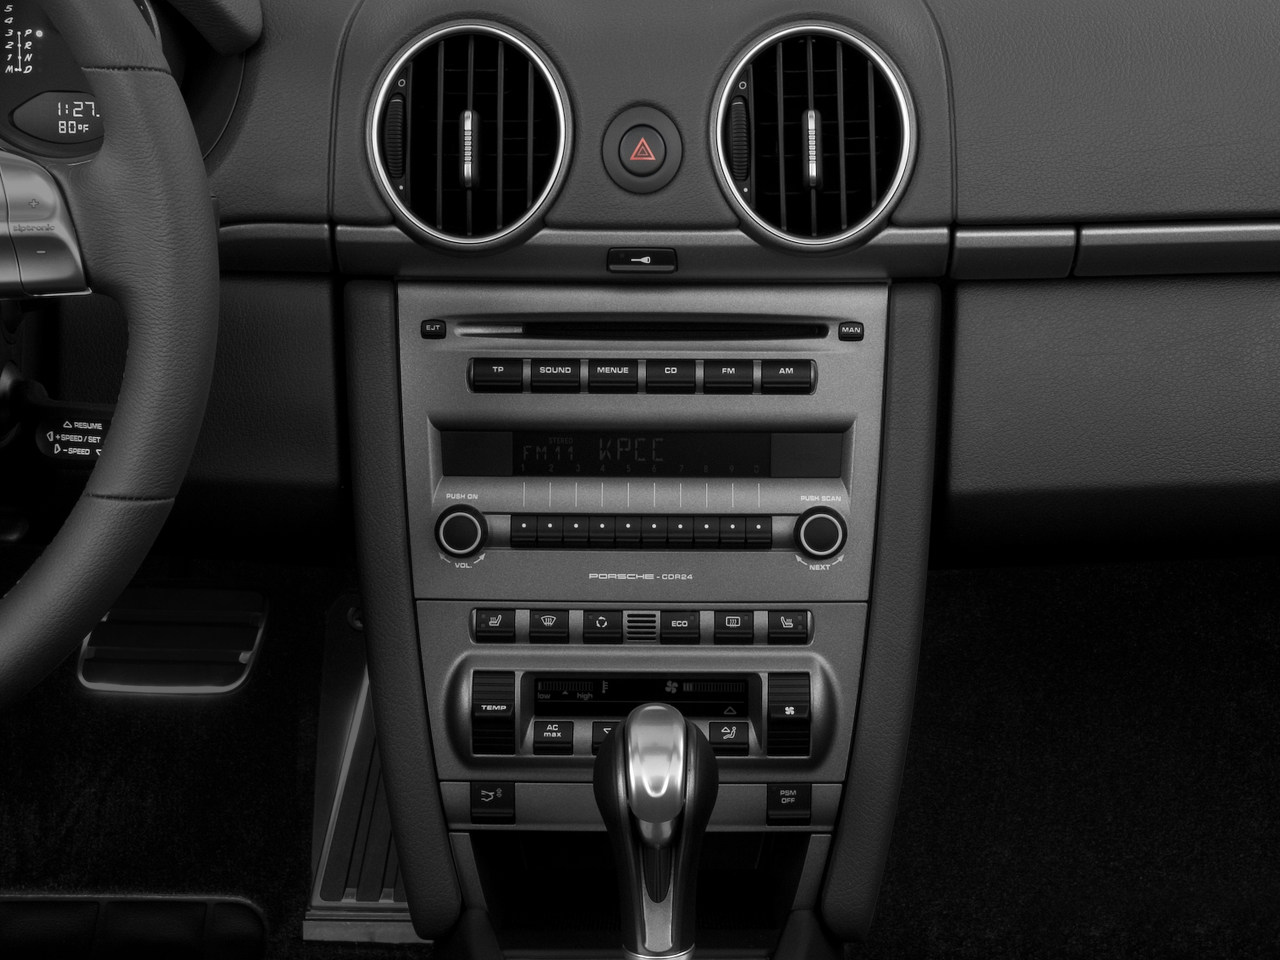 Details about New KNOB BUTTON for PORSCHE BOXSTER CAYMAN RADIO CONTROL  CDR-24 P/N 99764591300